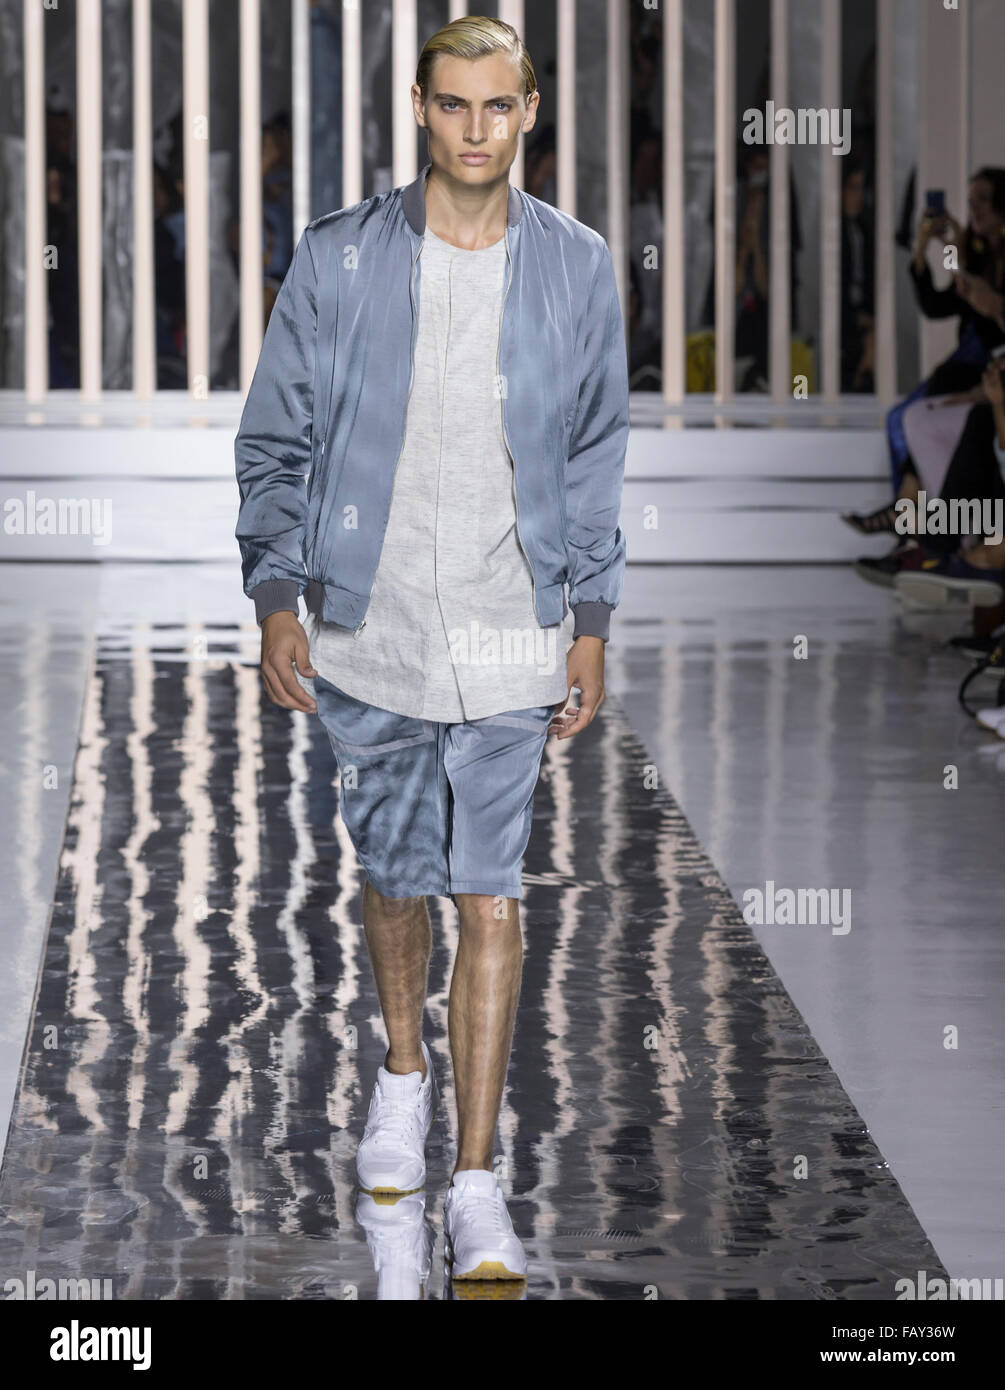 NEW YORK, NY - JULY 14, 2015: Trevor Drury walks the runway during the Rochambeau show at New York Fashion Week - Stock Image